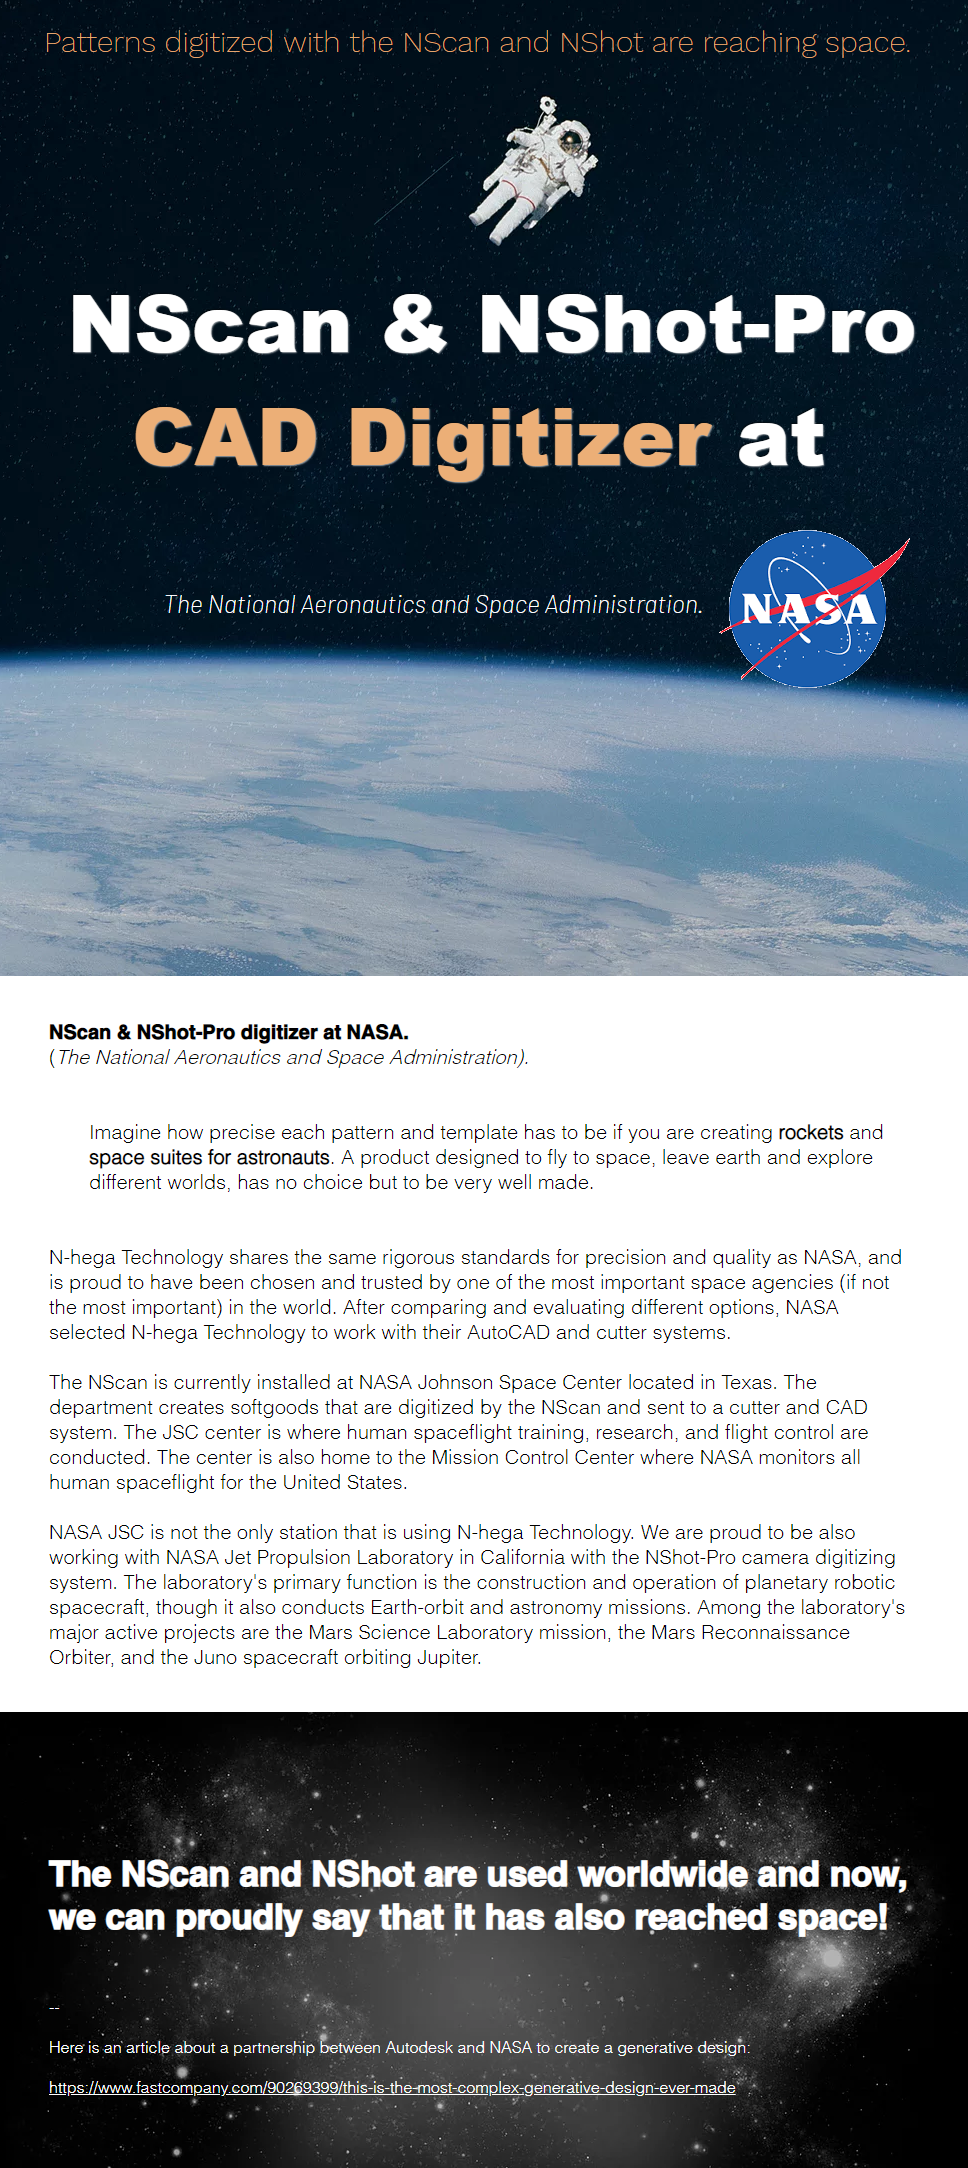 NASA uses the NScan and NShot Pro digitizers.